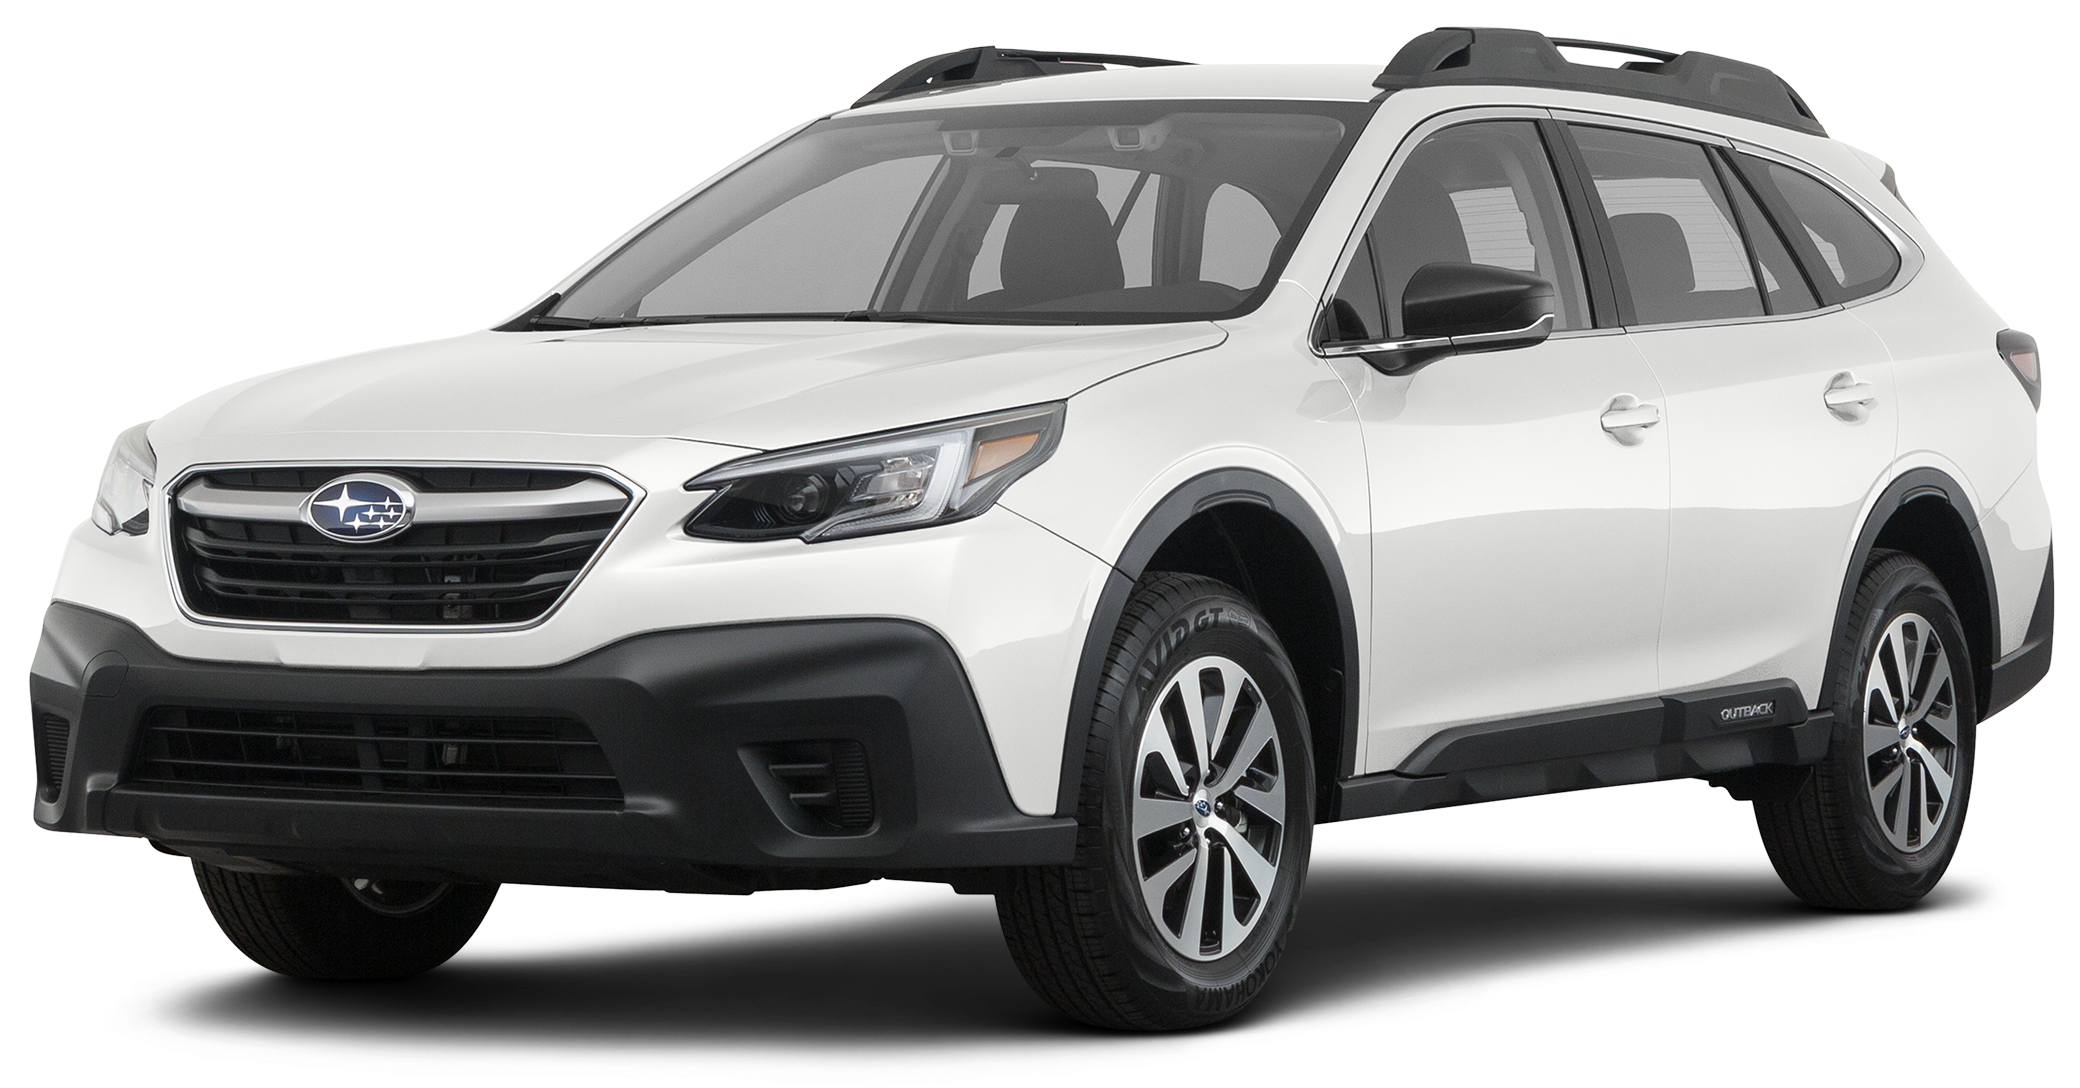 http://images.dealer.com/ddc/vehicles/2020/Subaru/Outback/SUV/trim_Base_b3a571/perspective/front-left/2020_76.png